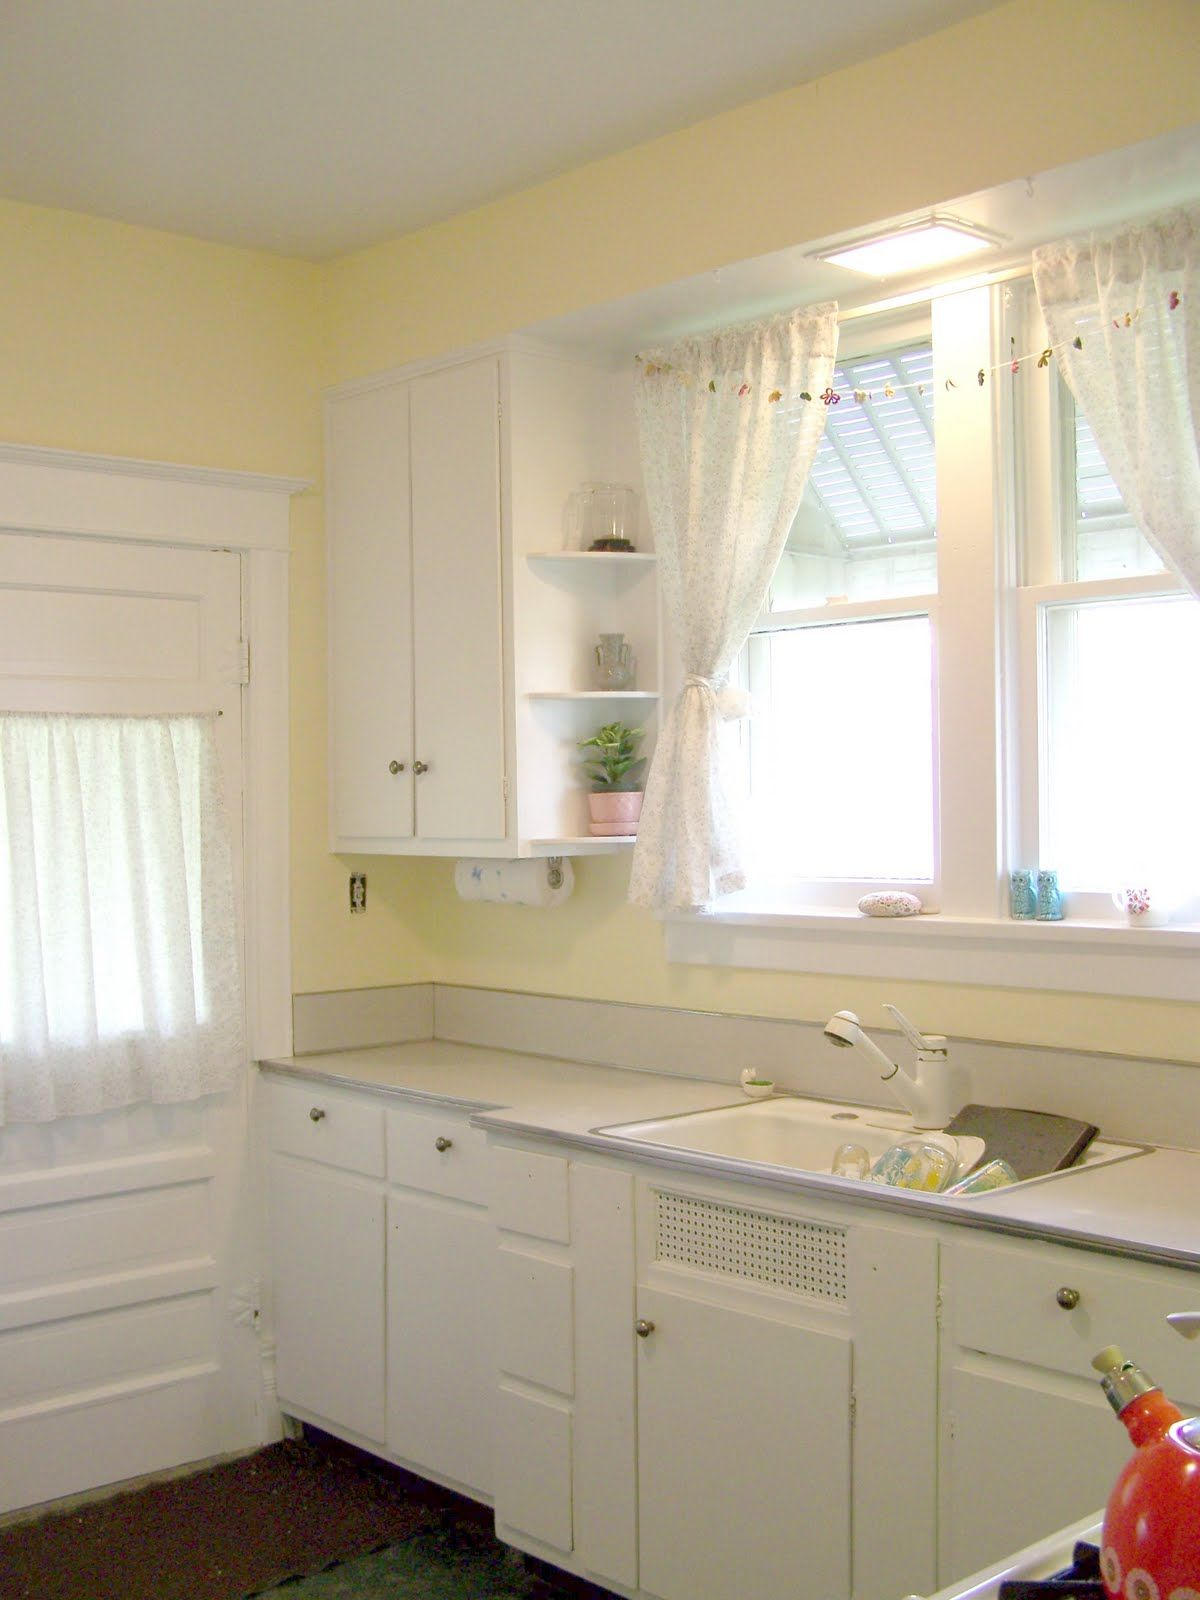 white and yellow kitchen - for our house at the lake! | What I want ...